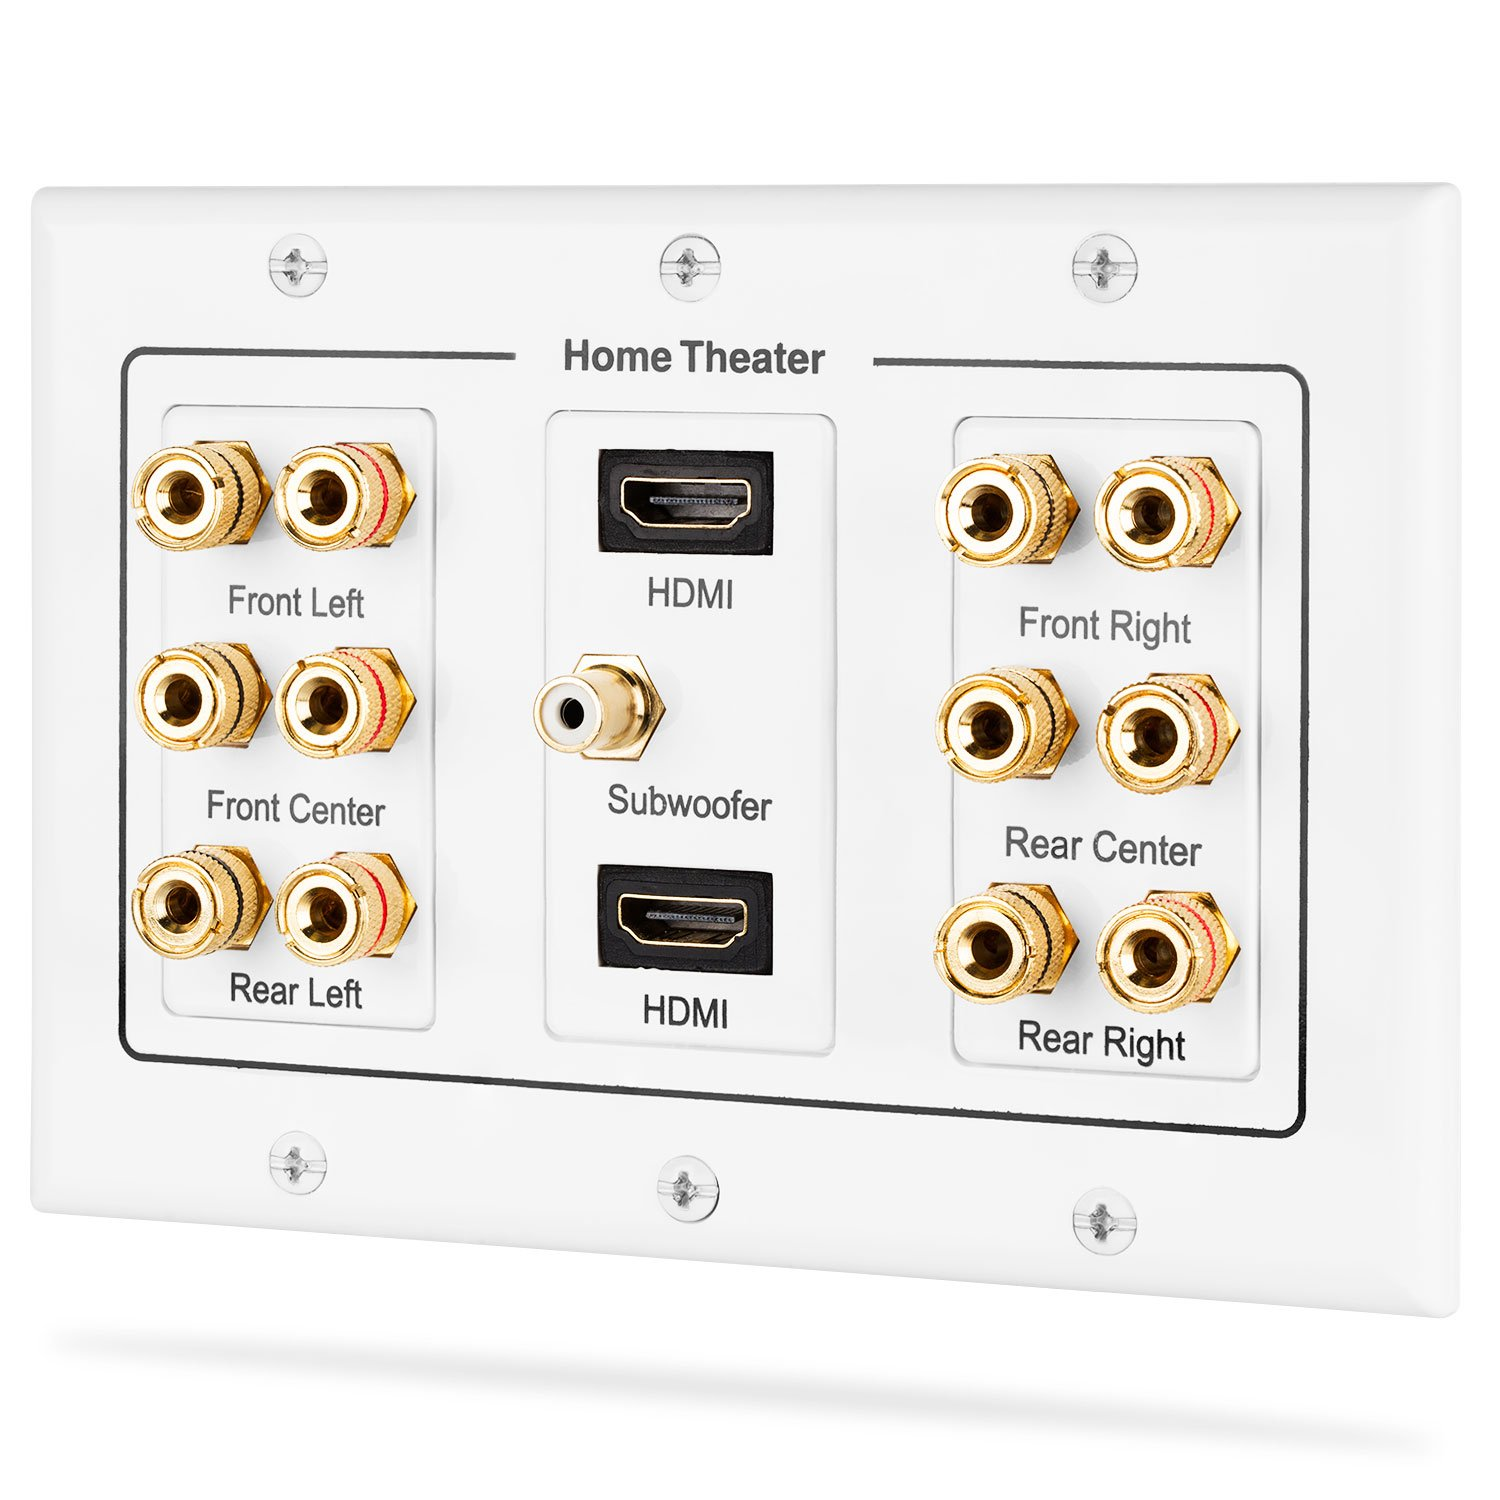 Fosmon [2-Gang 5.1 Surround Distribution] Home Theater Wall Plate - Premium Quality Gold Plated Copper Banana Binding Post Coupler Type Wall Plate for 5 Speakers and 1 RCA Jack for Subwoofer (White) Fosmon Technology HD8004